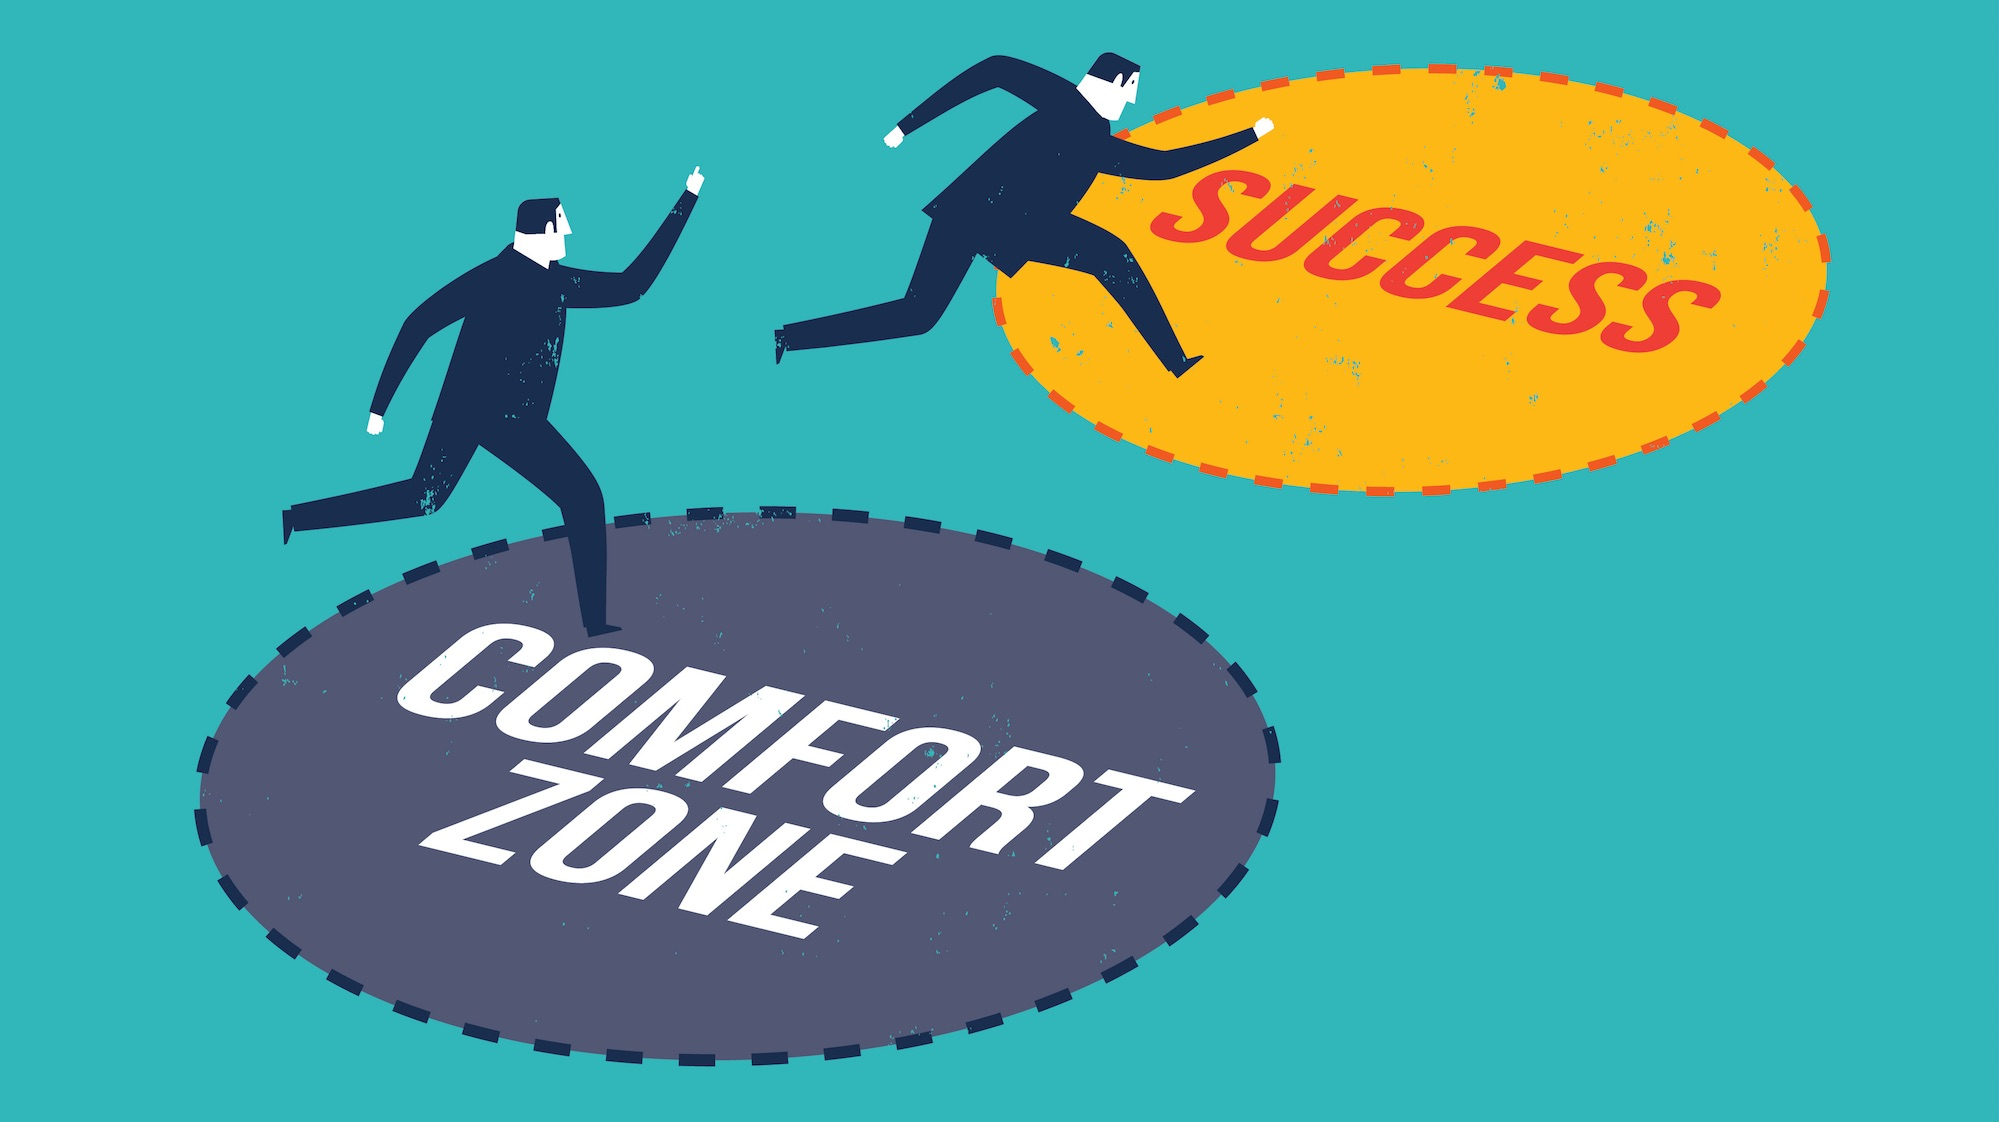 essays on leaving your comfort zone Free essay: comfort zone icebreaker game what is the comfort zone your comfort zone is any type of behavior that keeps you at a steadily low anxiety level.